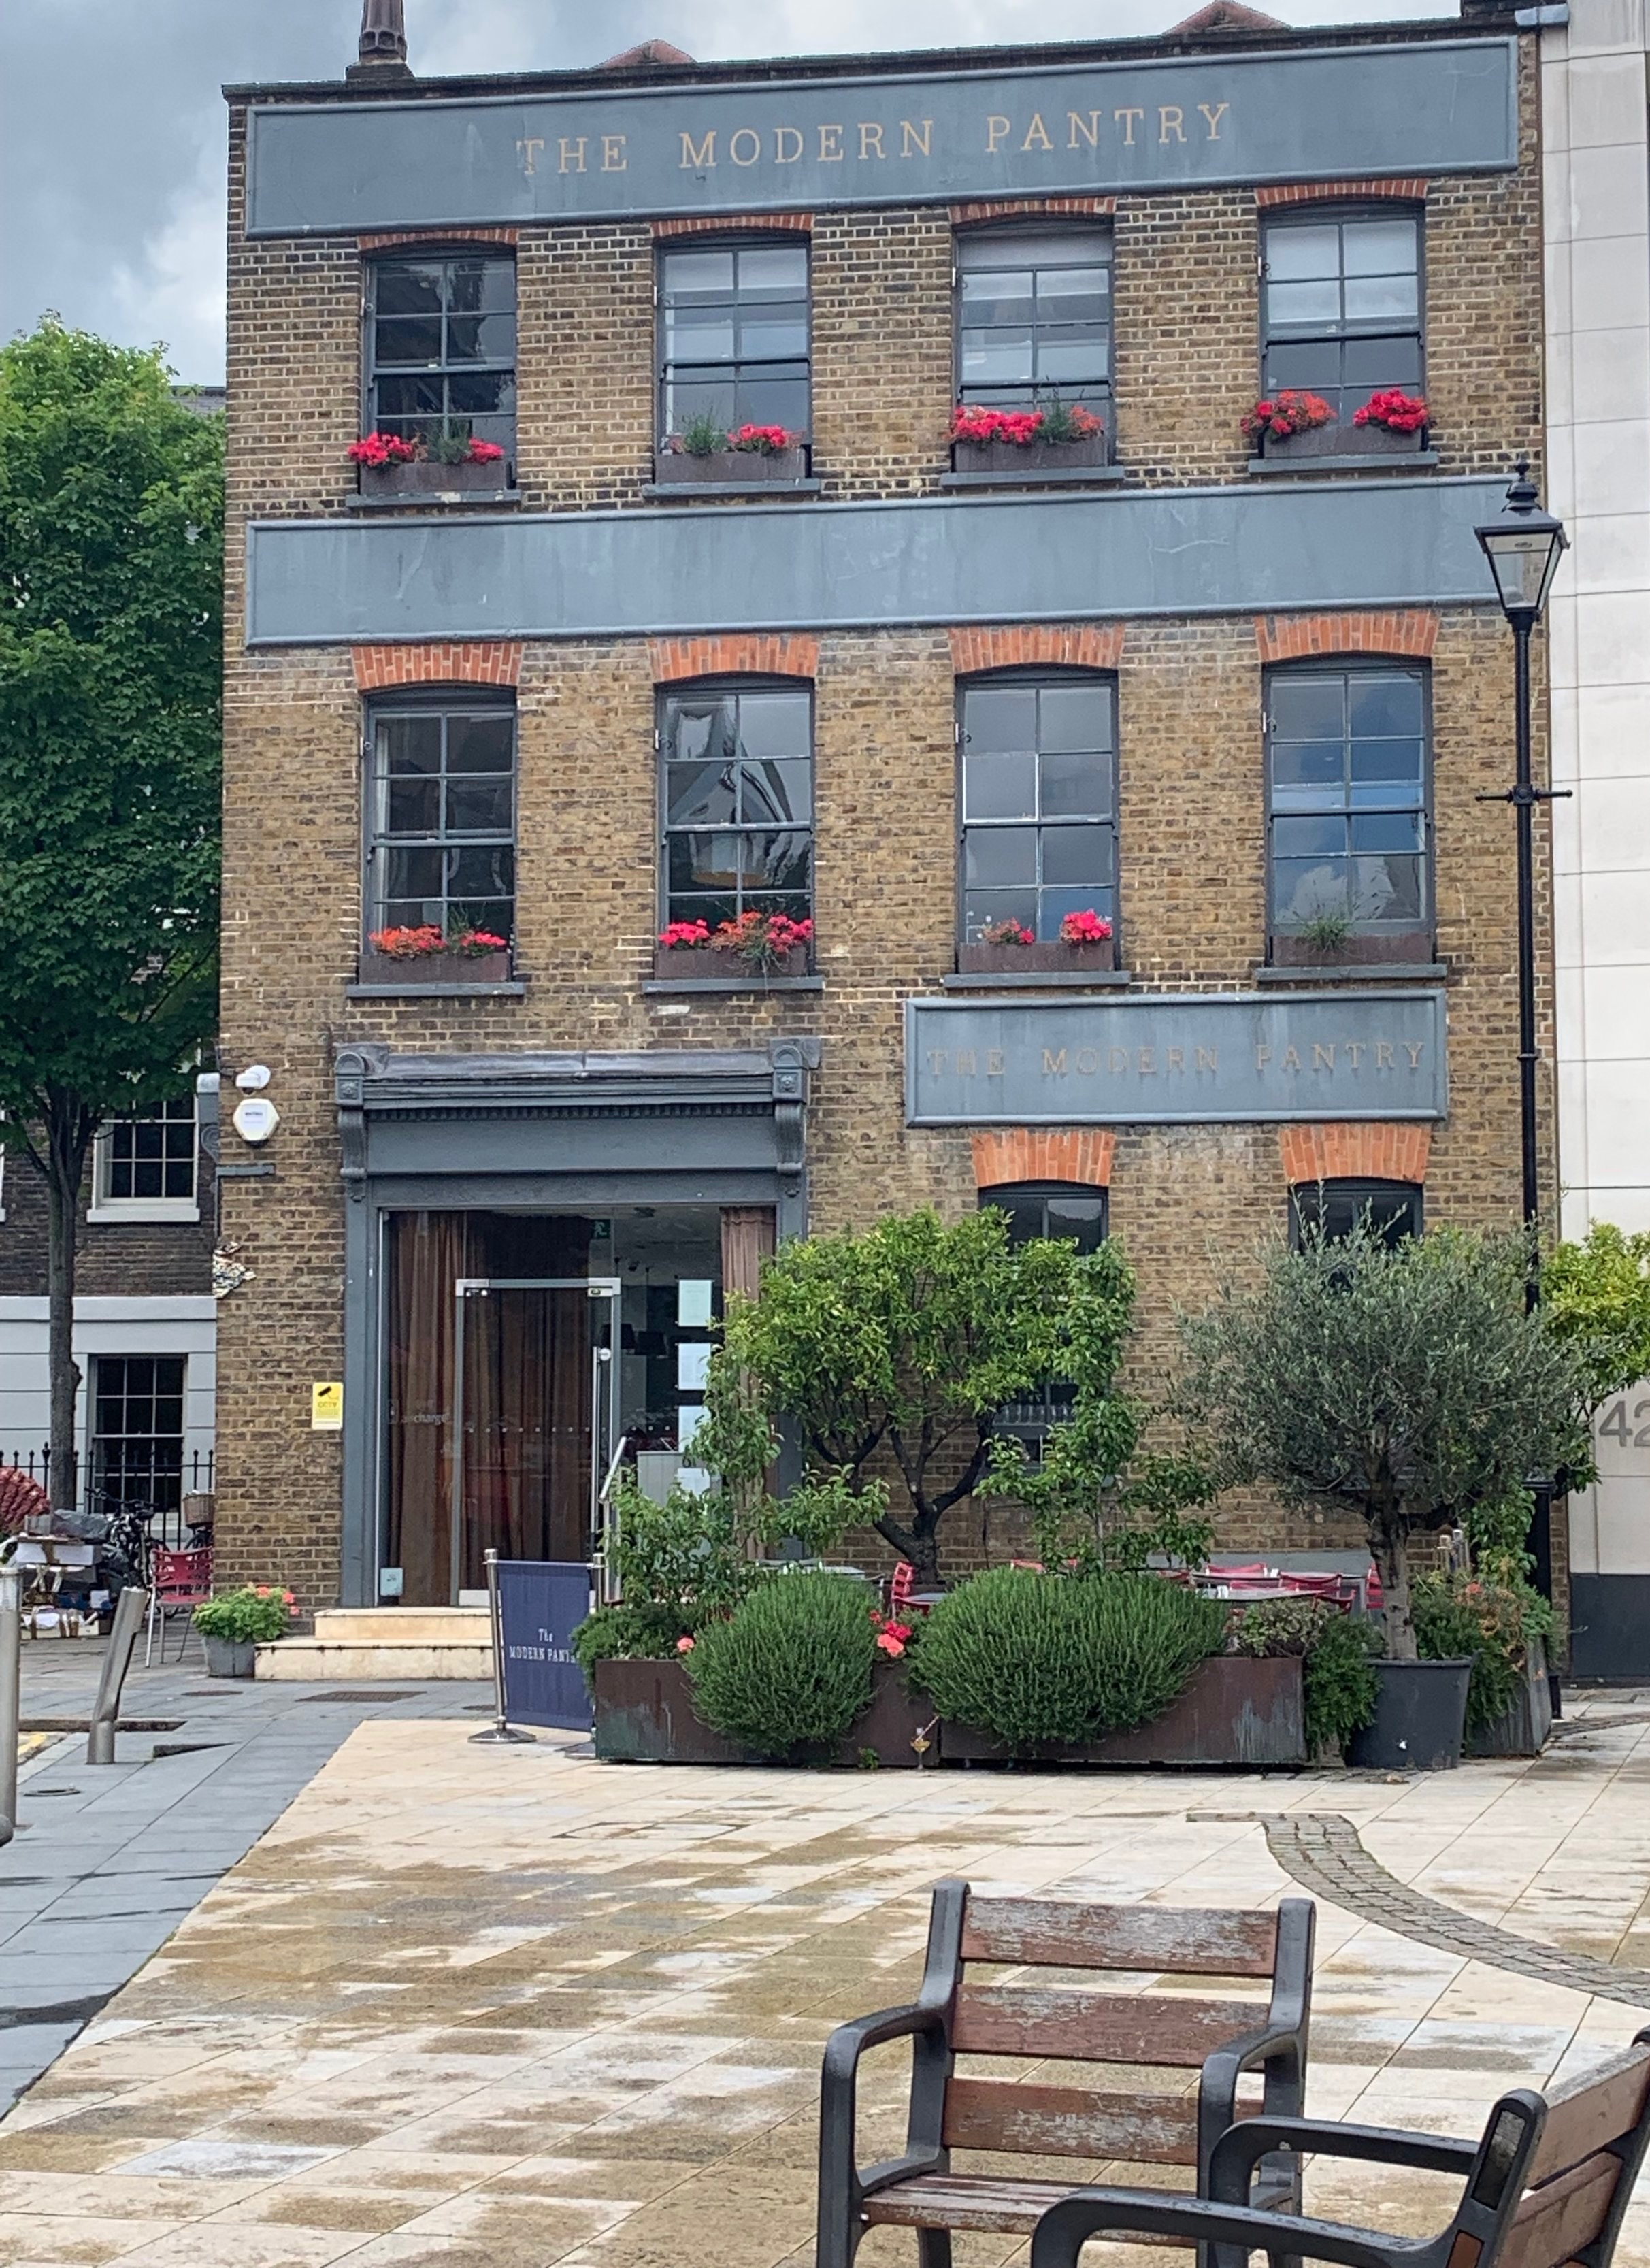 In the same block as DeVol, we had a lovely afternoon tea/lunch here.  I love the architecture, branding and food!